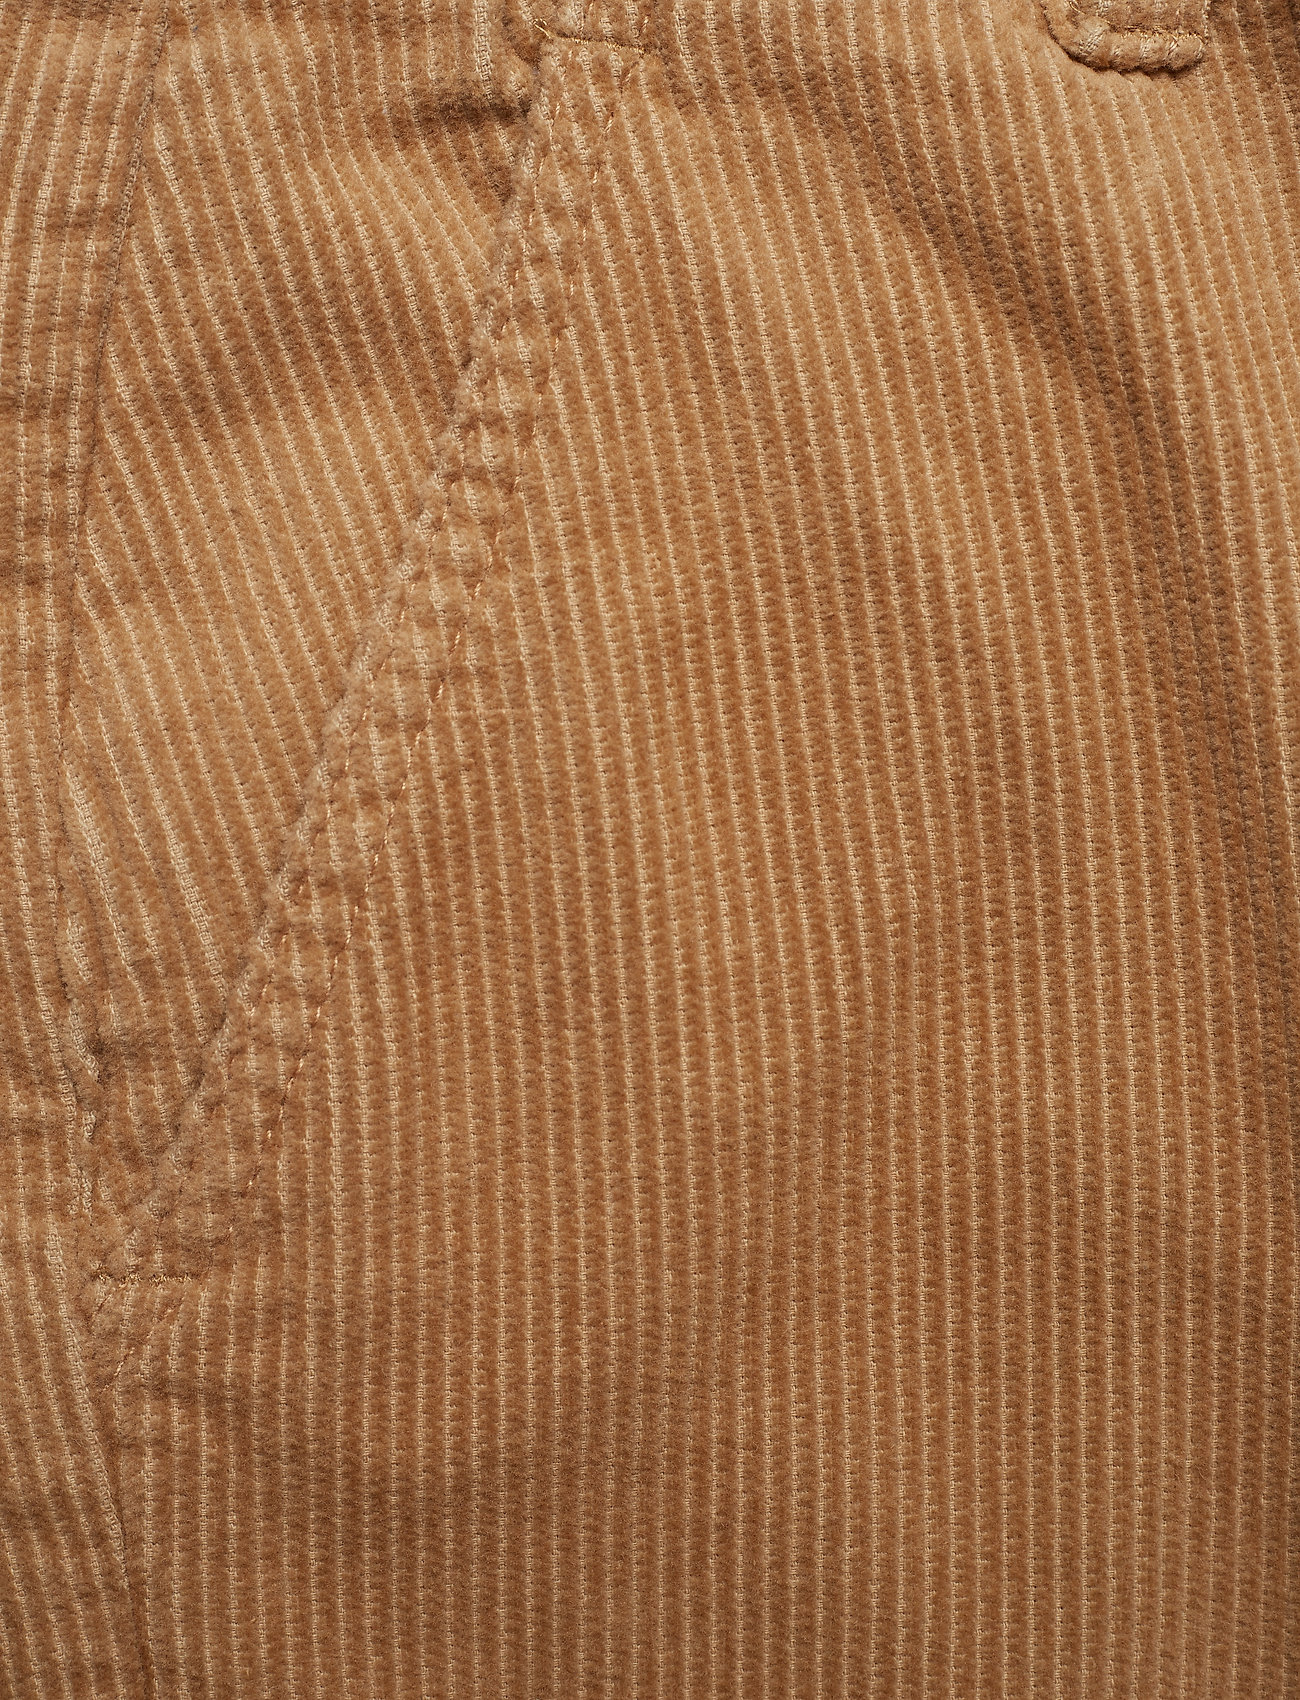 Solo Shorts (Sand) (224.70 kr) - Just Junkies